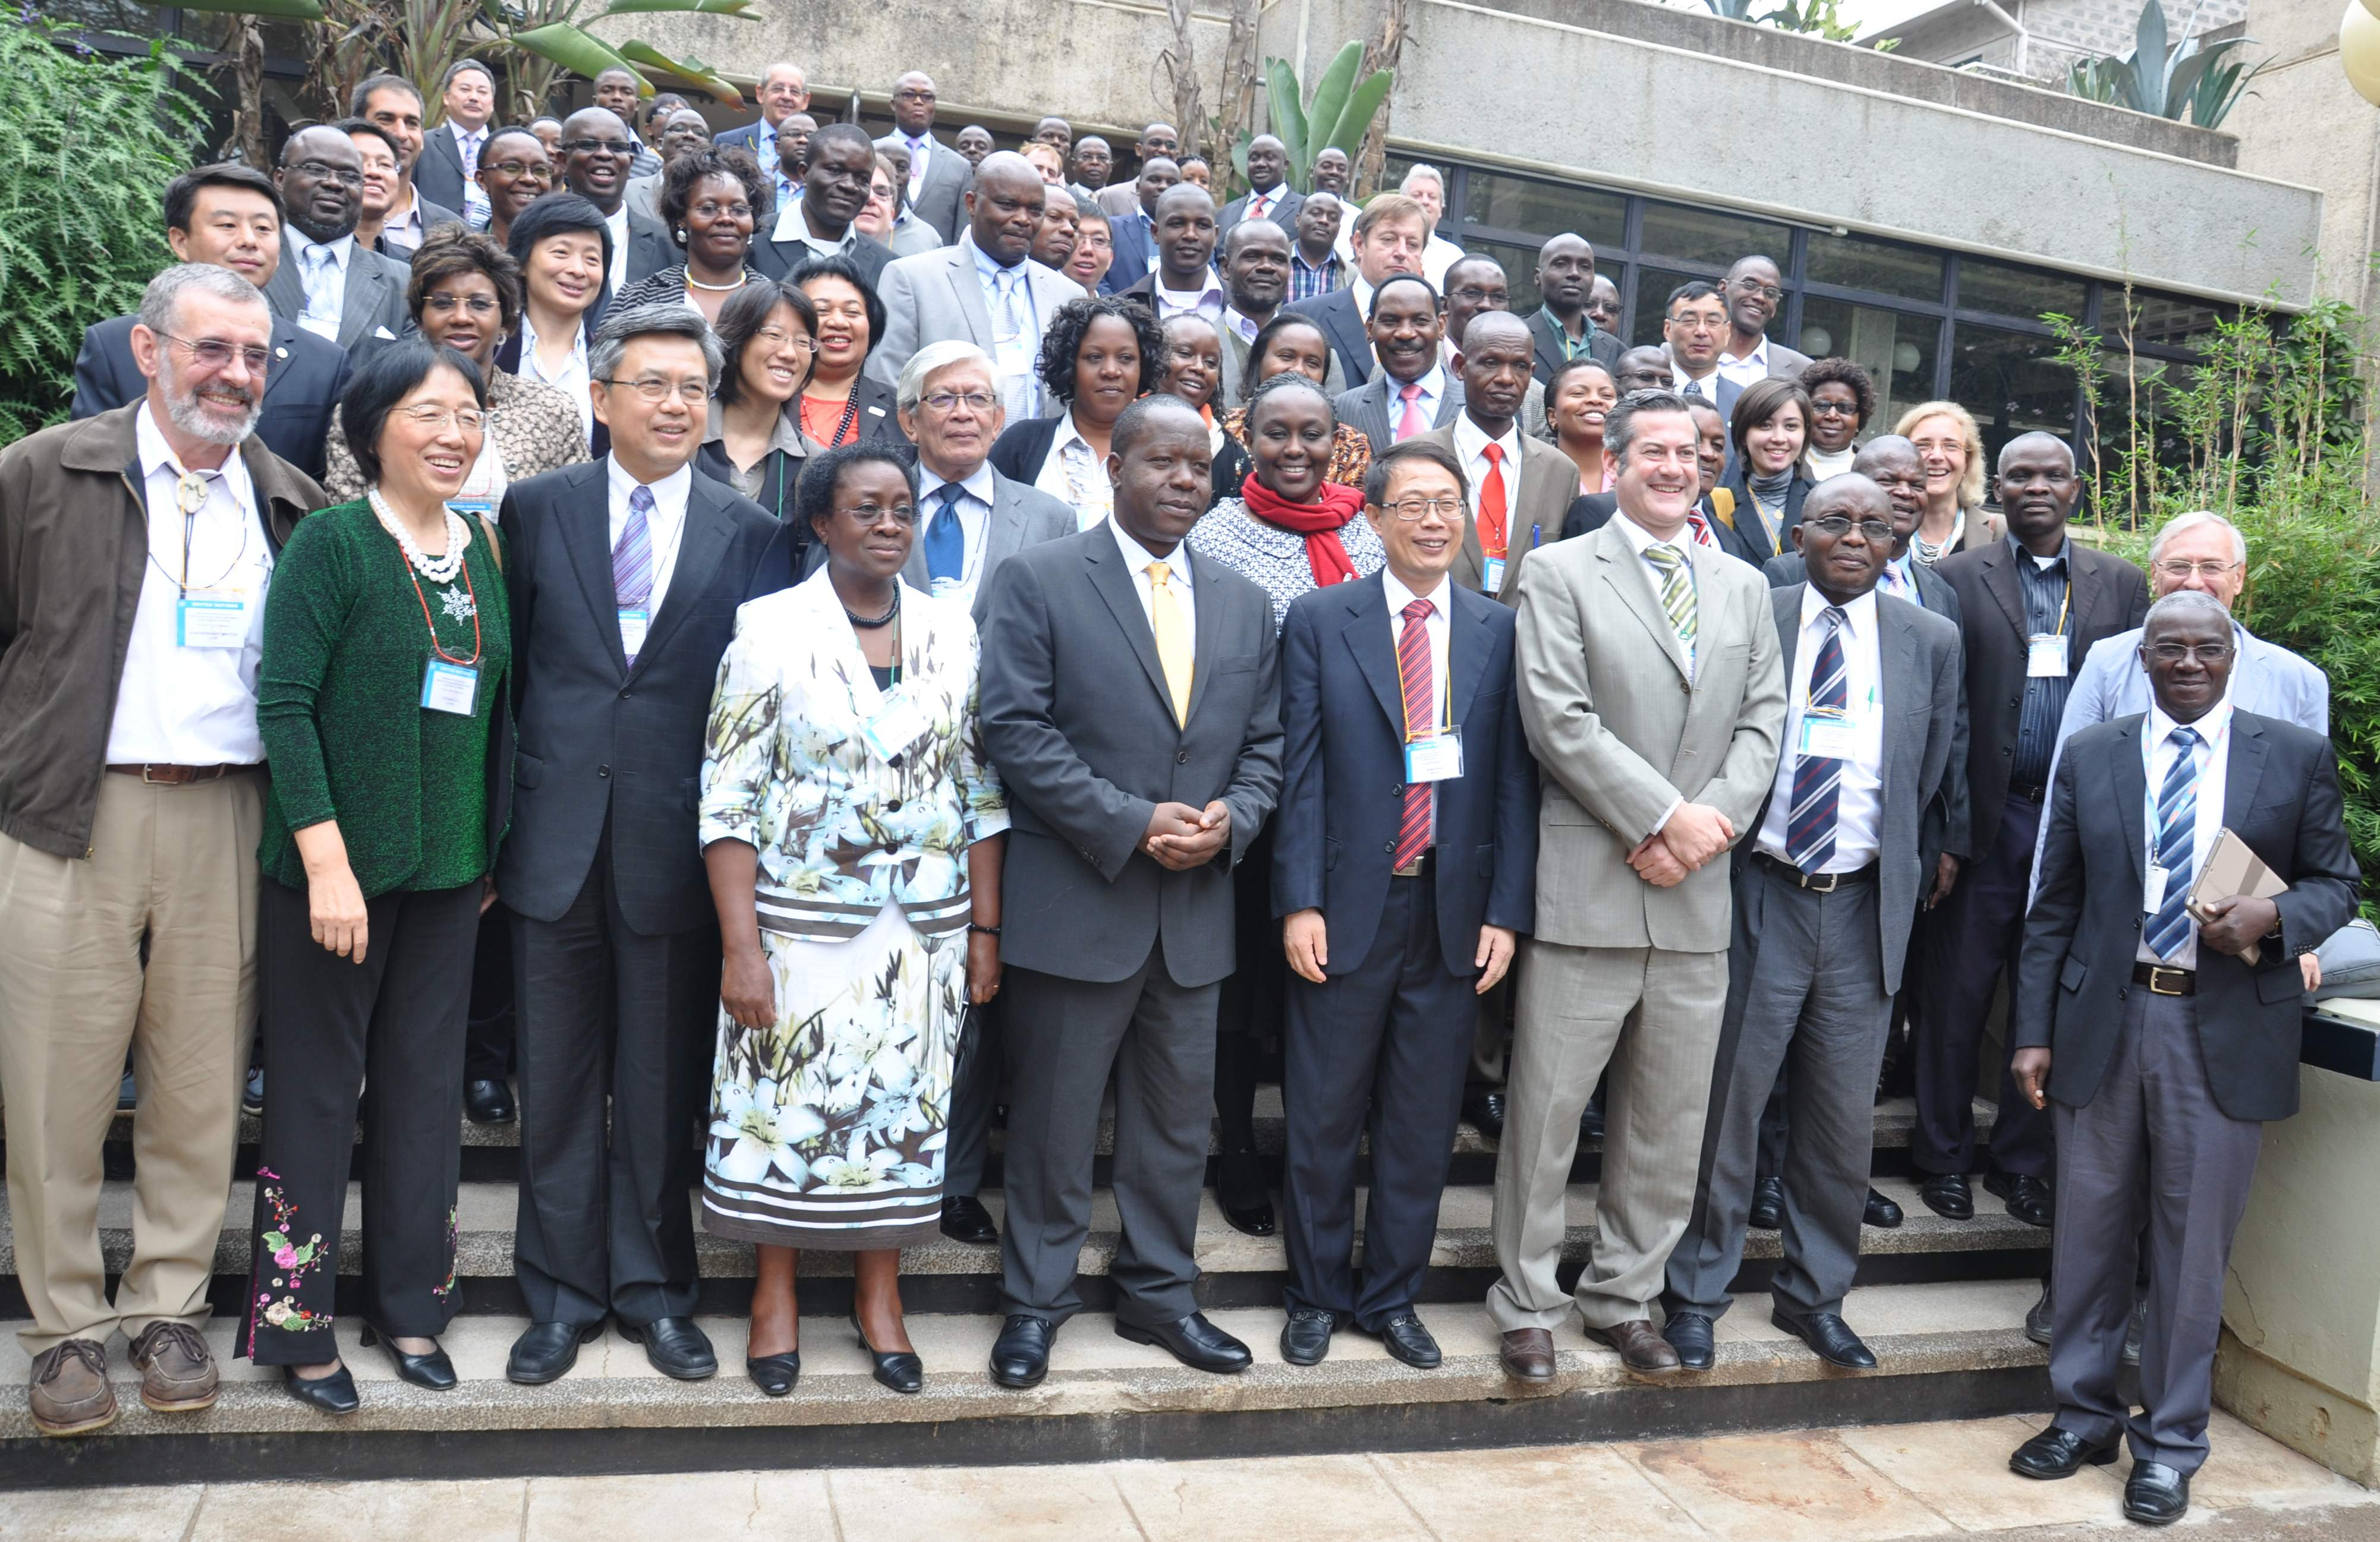 Participants of the Workshop on Open Data for Science and Sustainability in Developing Countries, UNESCO, Nairobi, Kenya, 6-8 August 2014